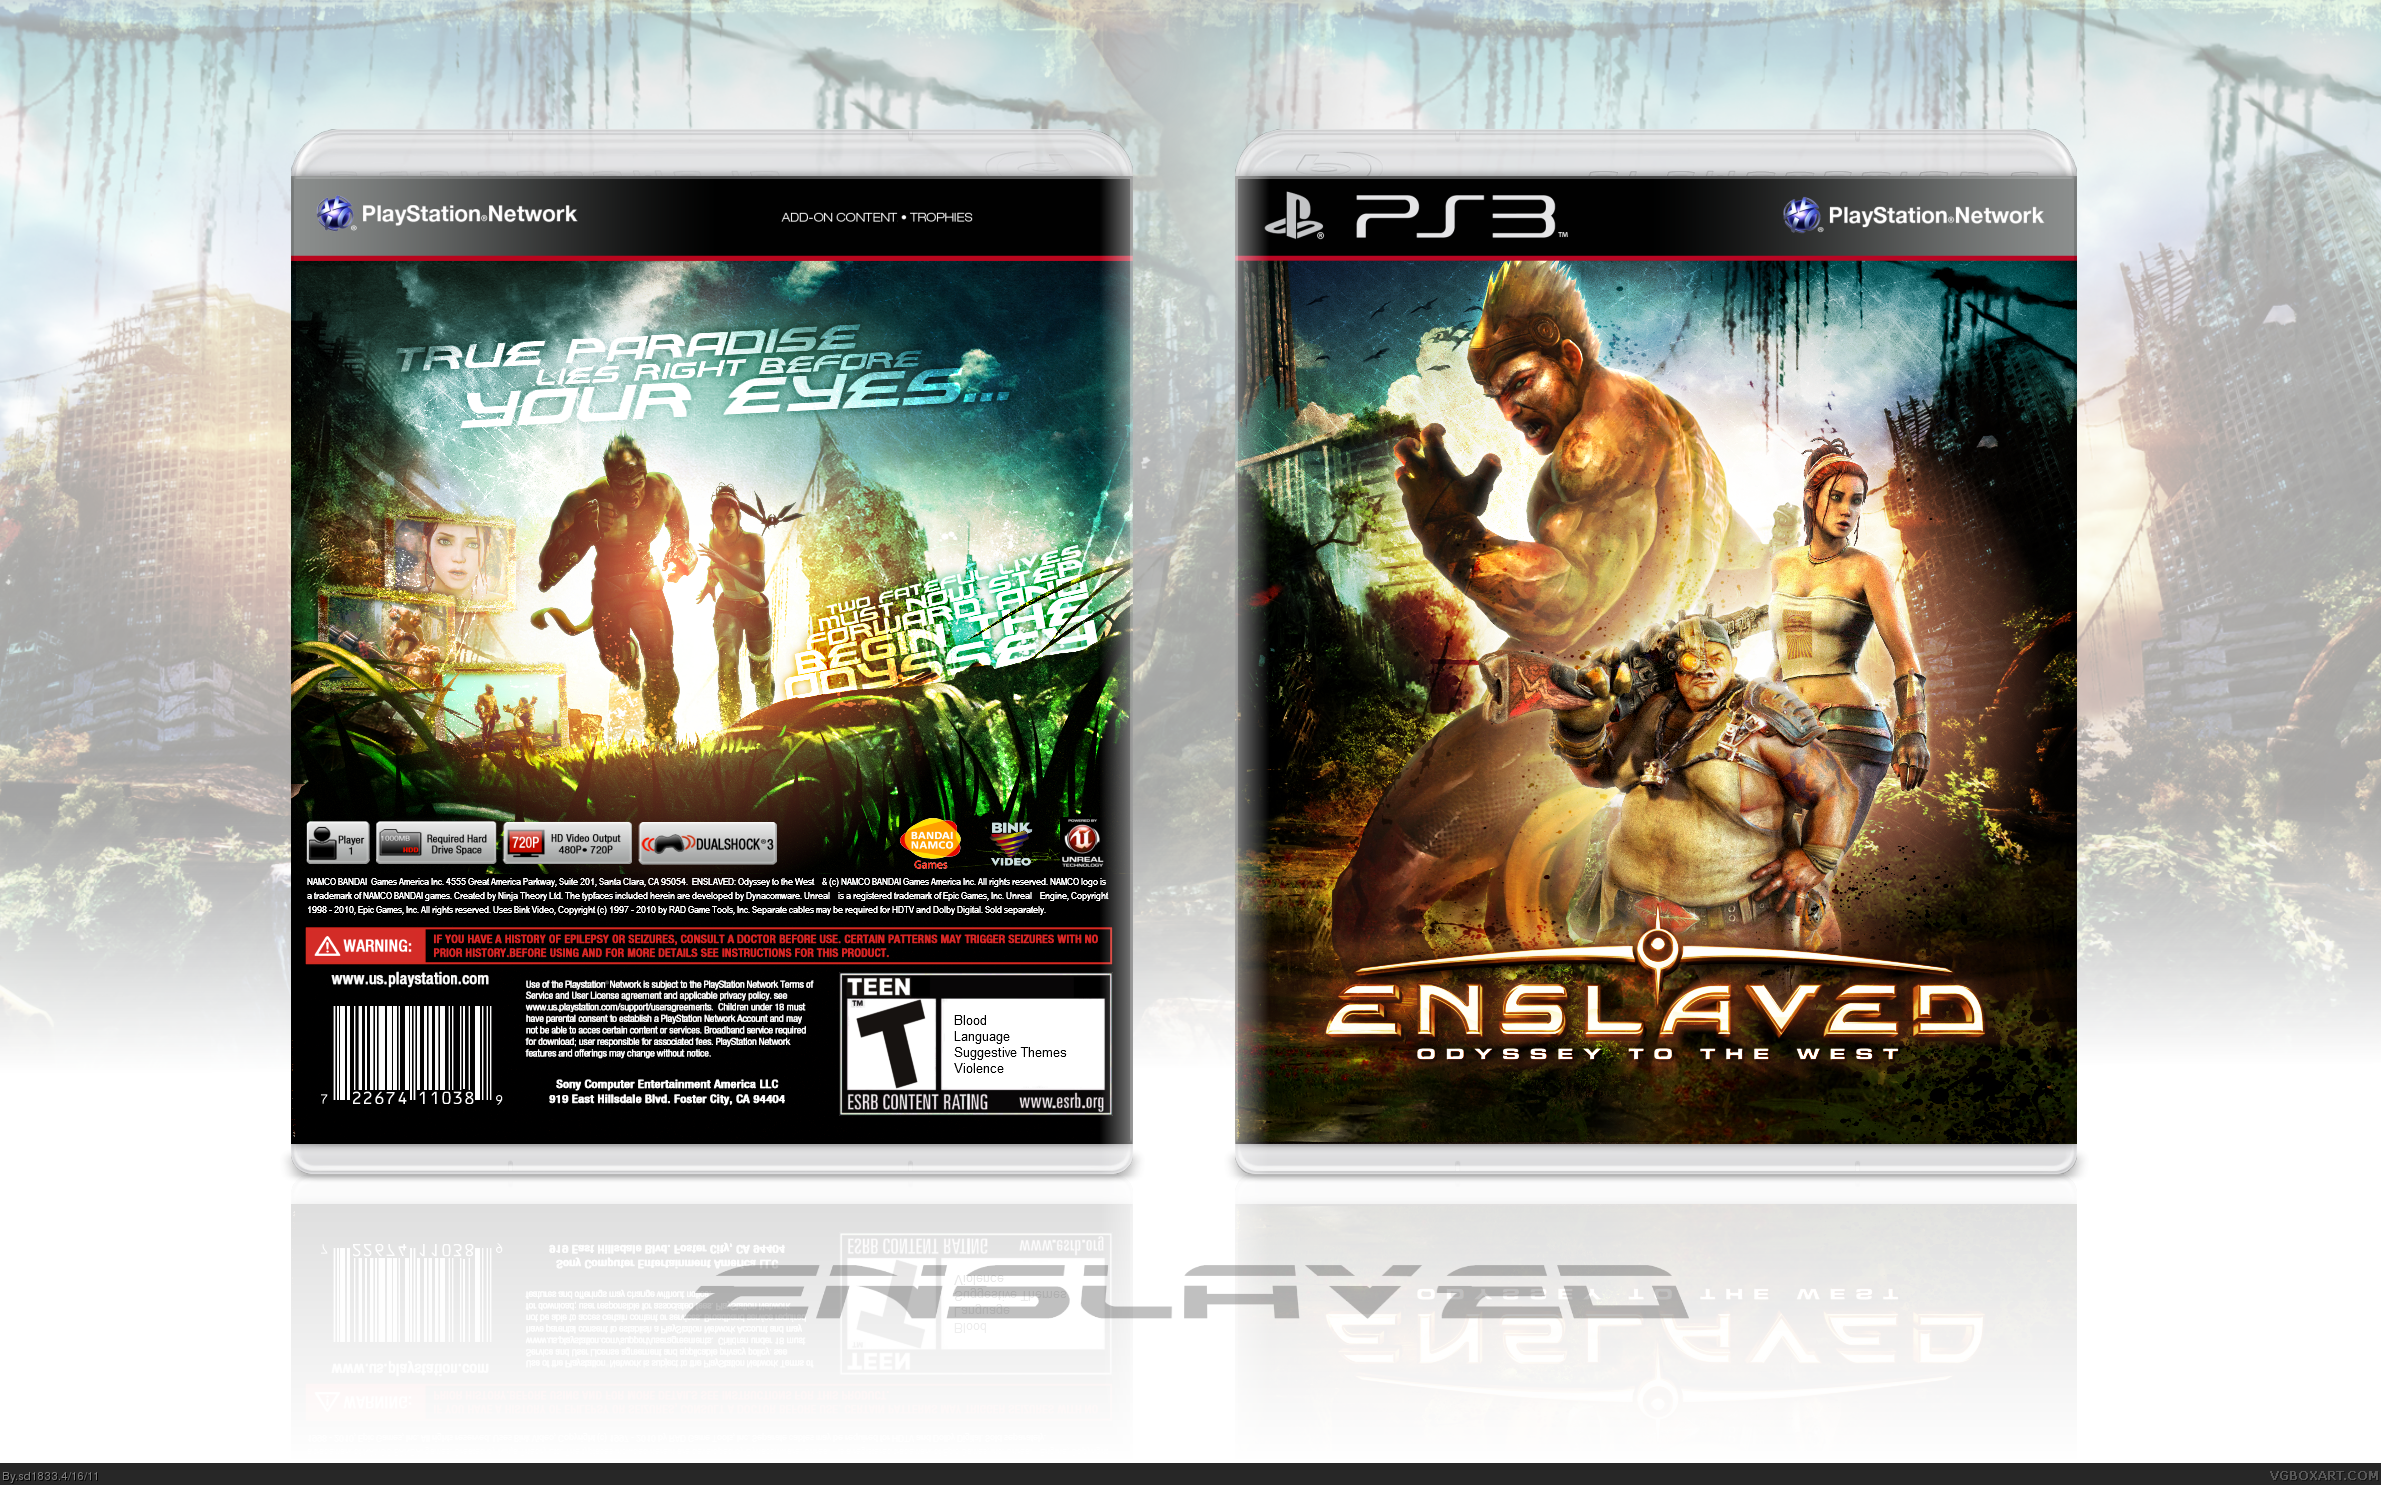 Enslaved: Odyssey to the West box cover